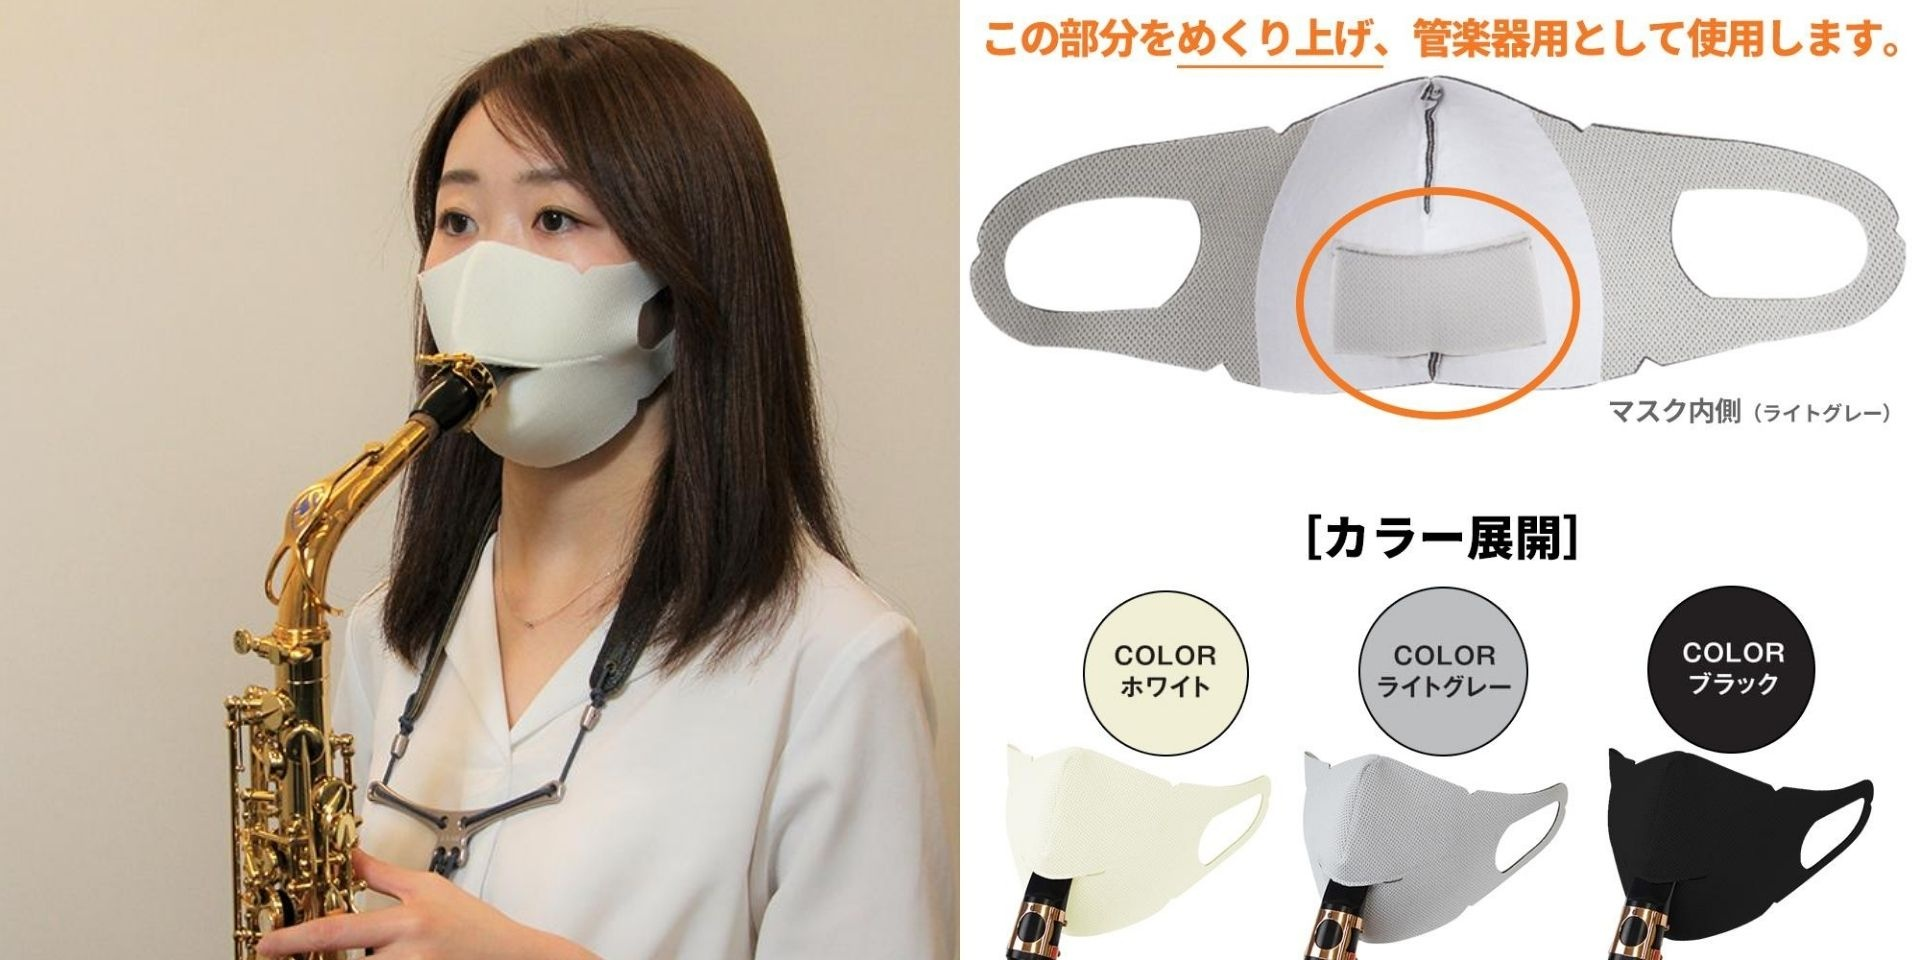 Musicians can now play wind instruments with this innovative mask designed in Japan